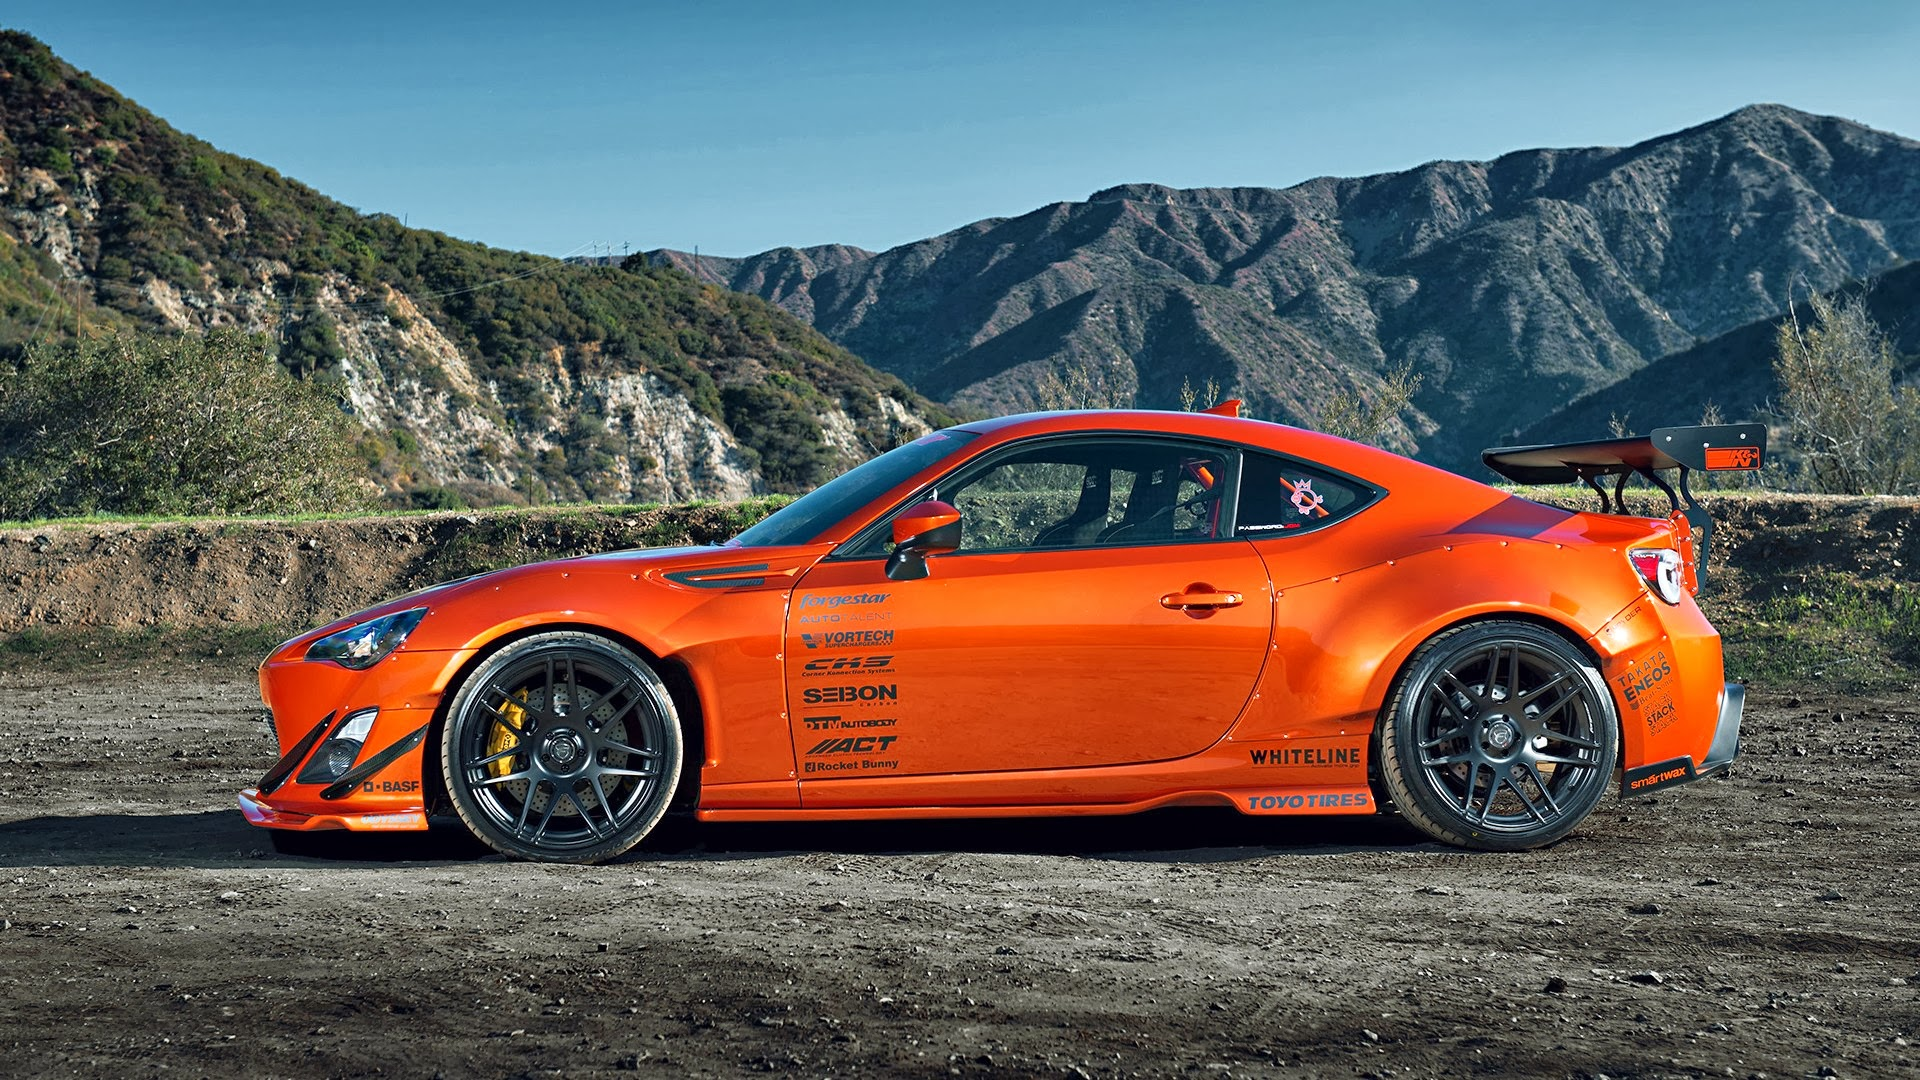 Toyota Gt86 Tuning Car 2012 Upcoming Cars News